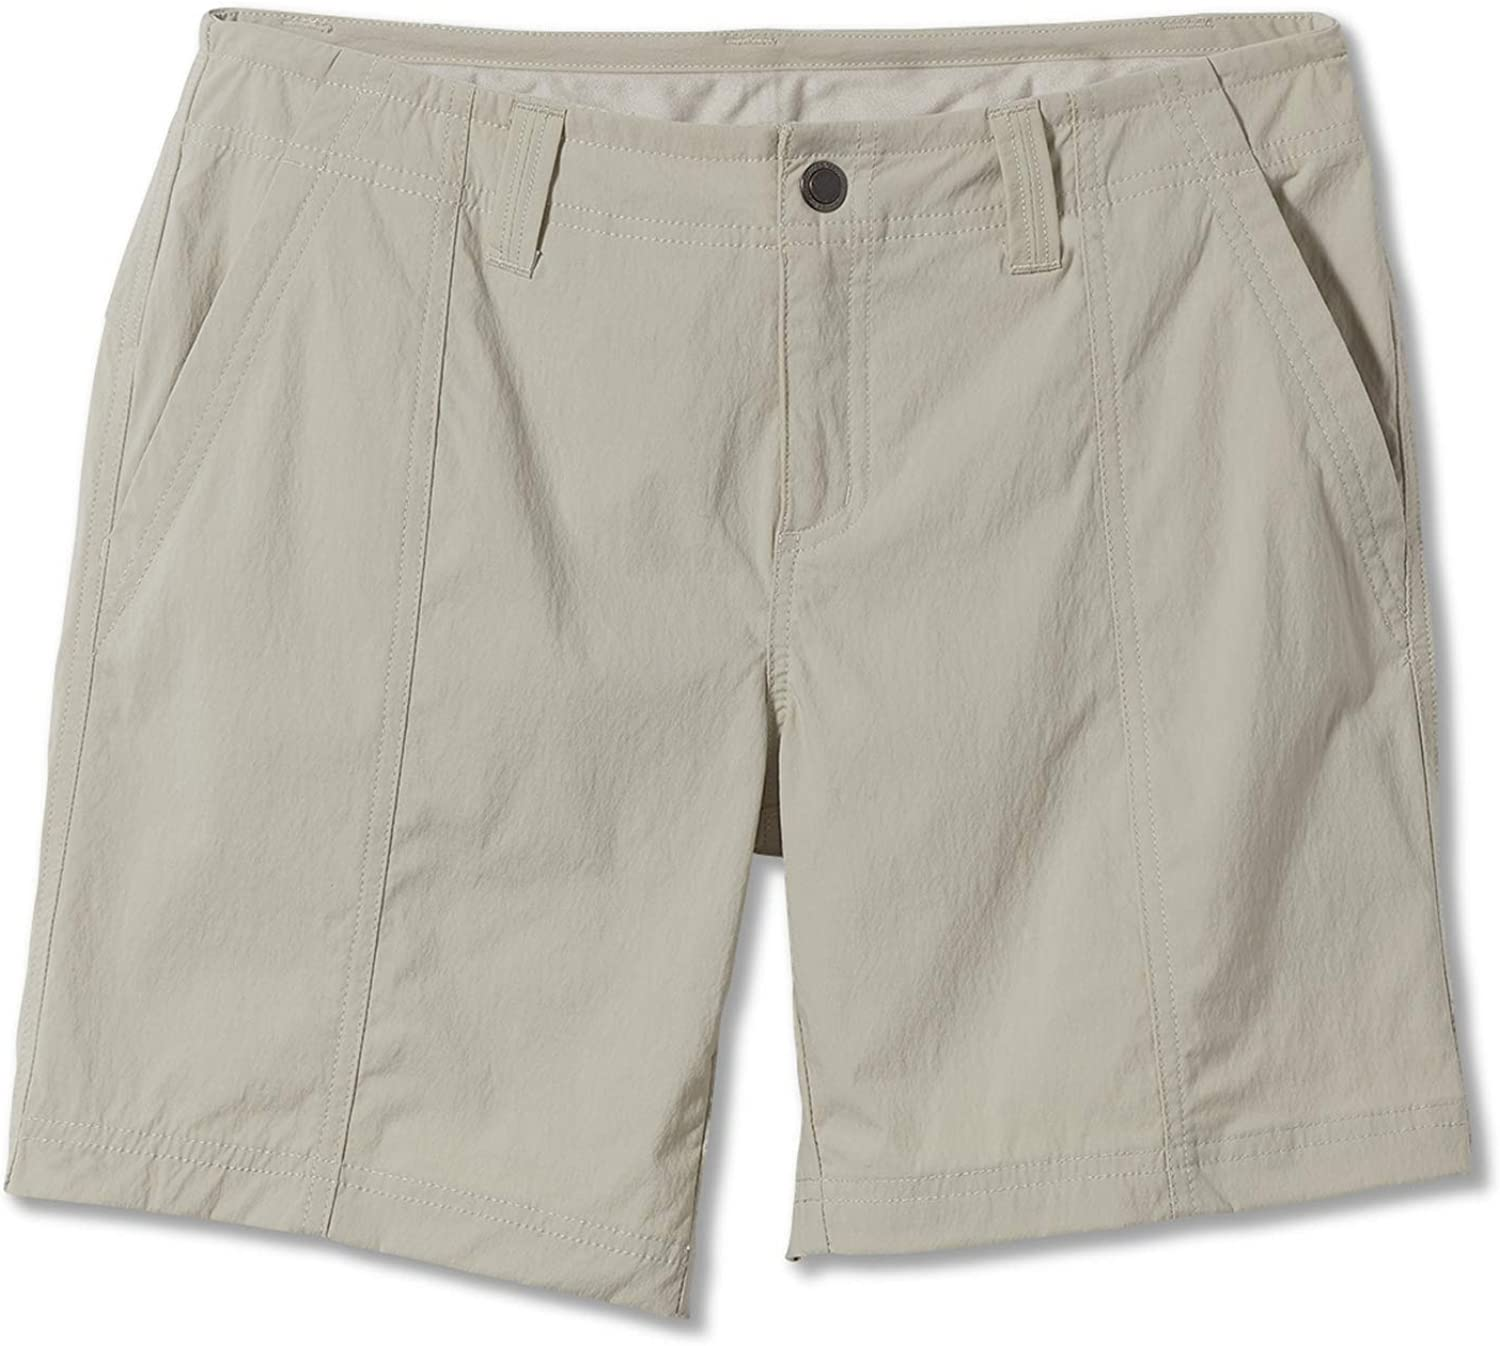 Royal Robbins Women's Iii Shorts safety Discovery Max 48% OFF